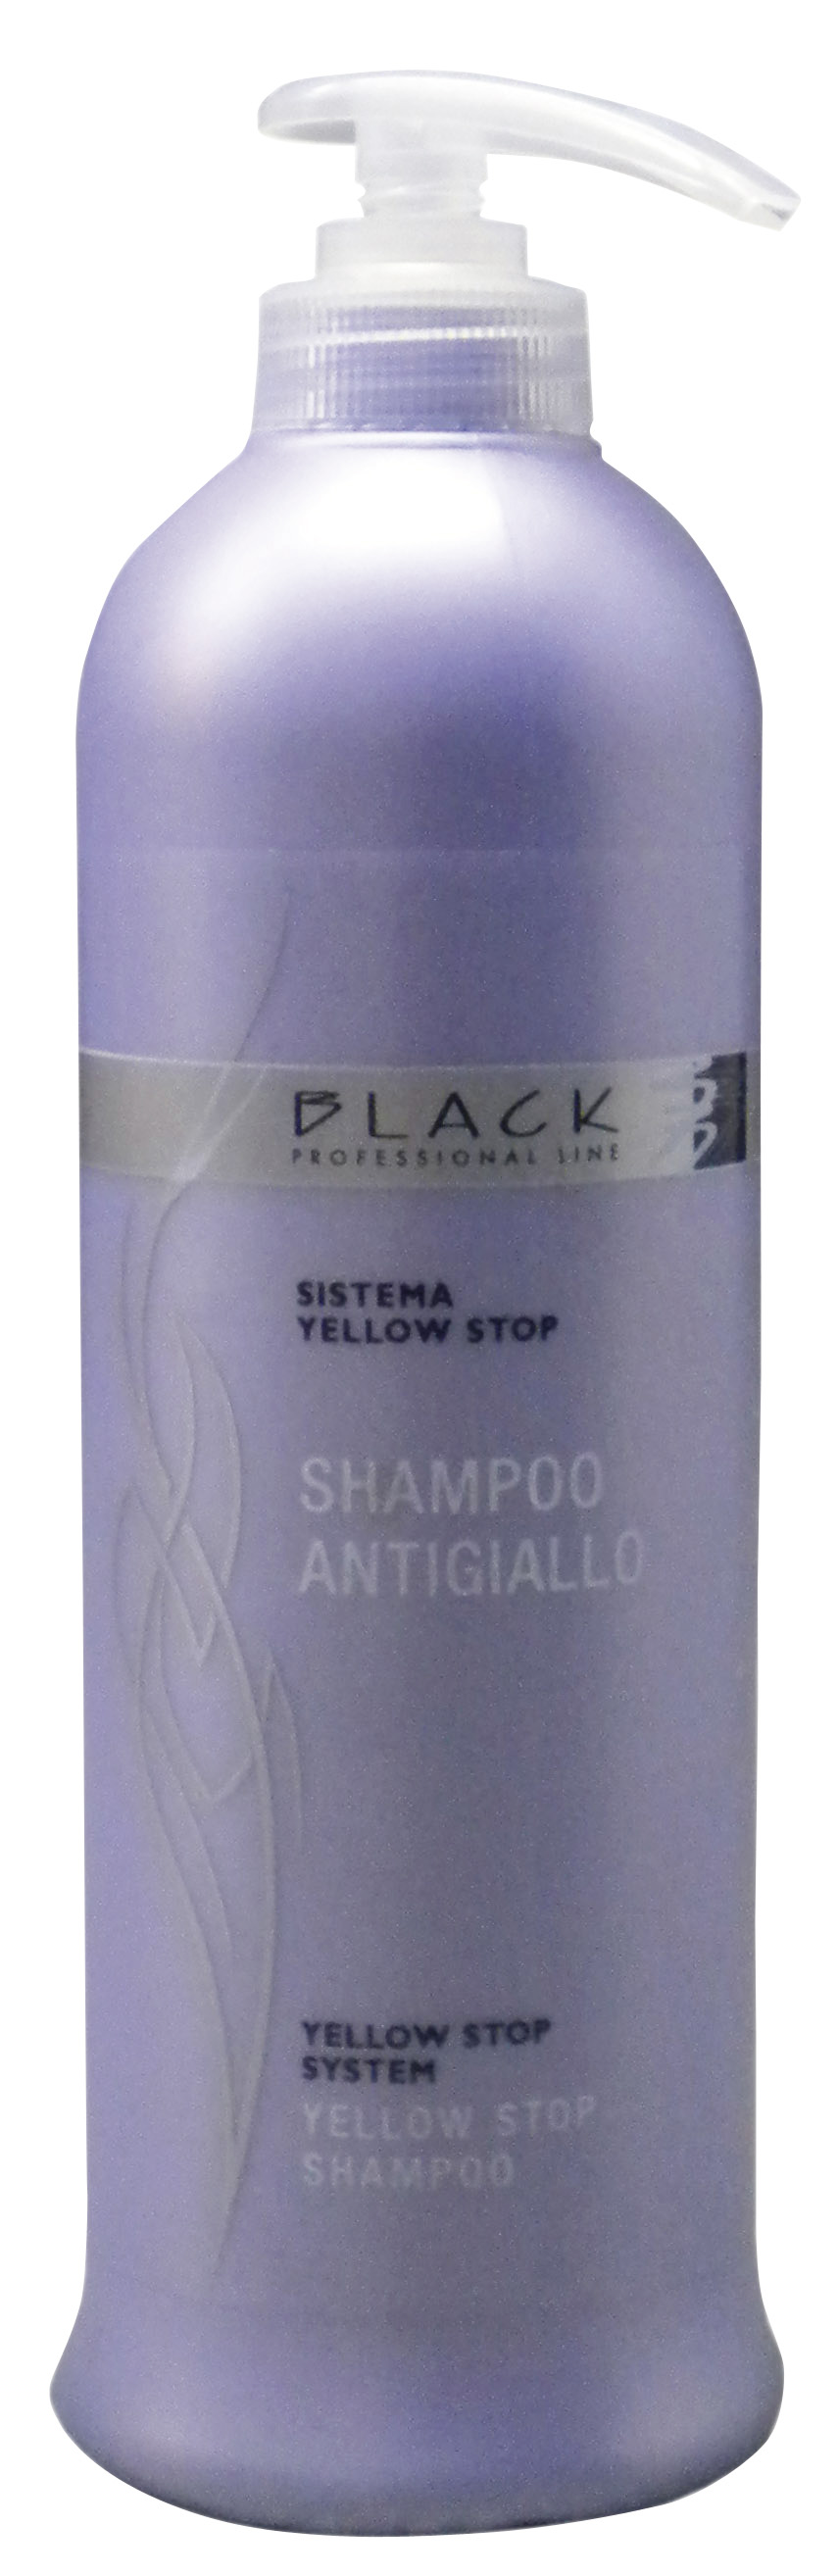 Black Yellow Stop Shampoo 500ml šampón na vlasy